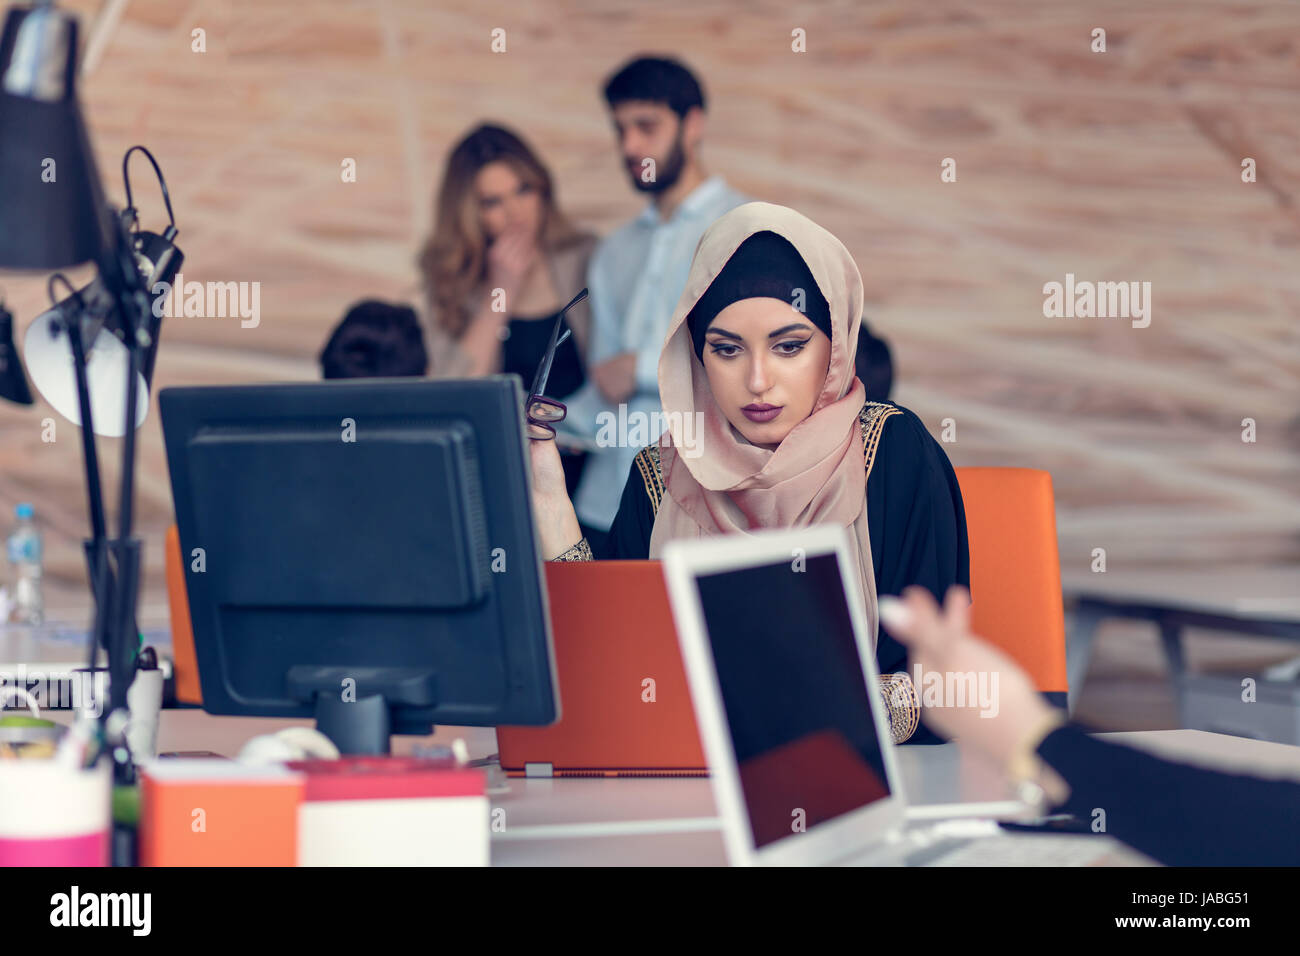 Young Arabic business woman wearing hijab,working in her startup office. - Stock Image